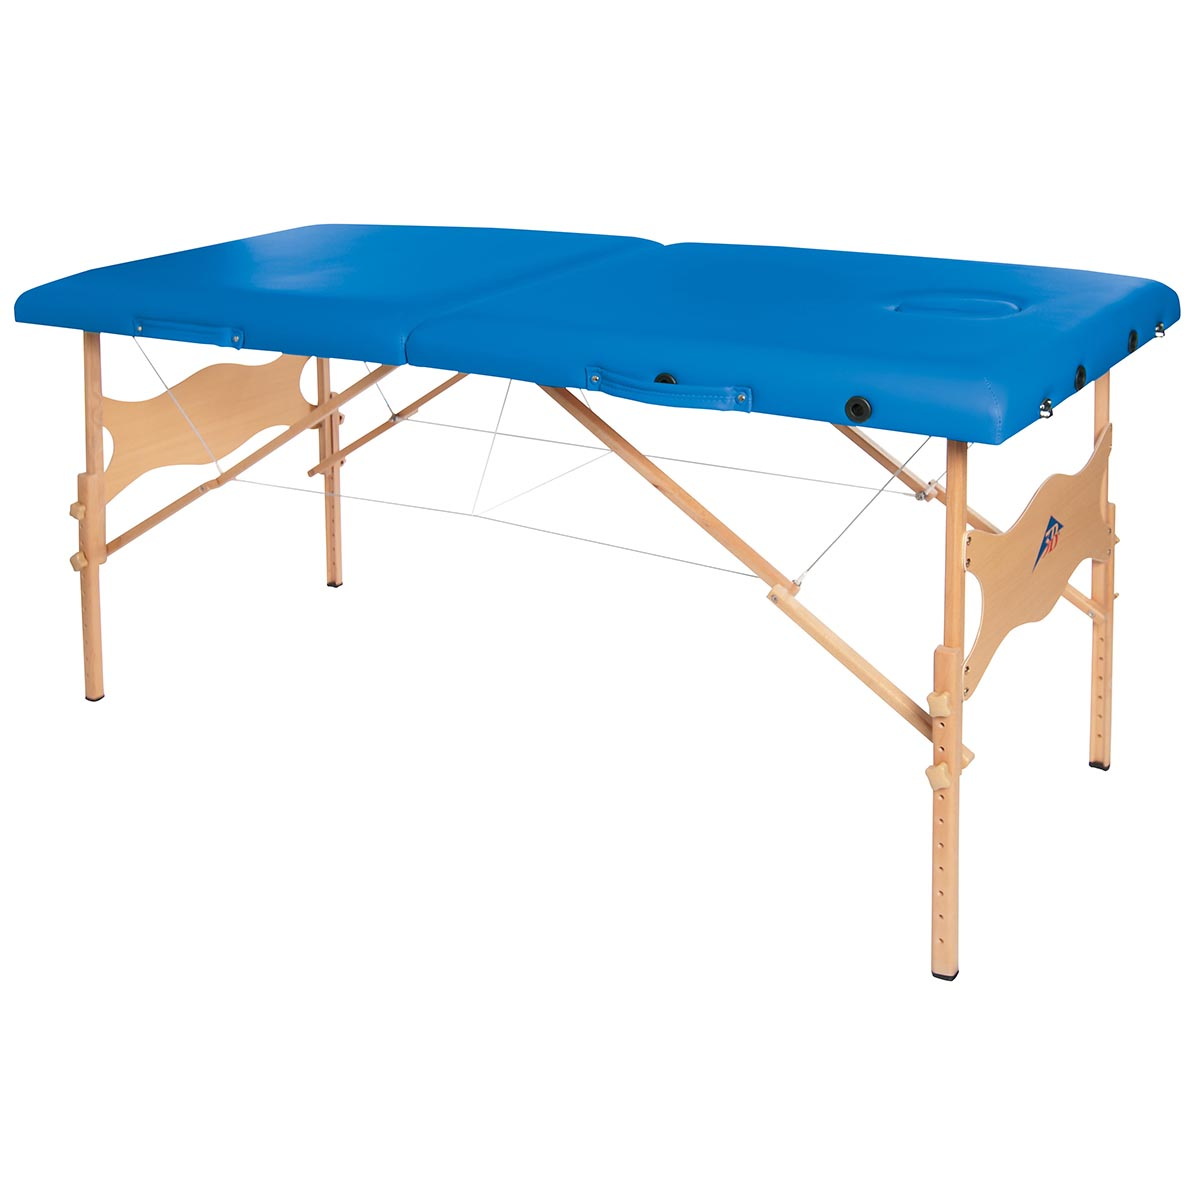 Table de massage pliante kin sith rapie ost opathie table portable l g re - Table de massage legere ...